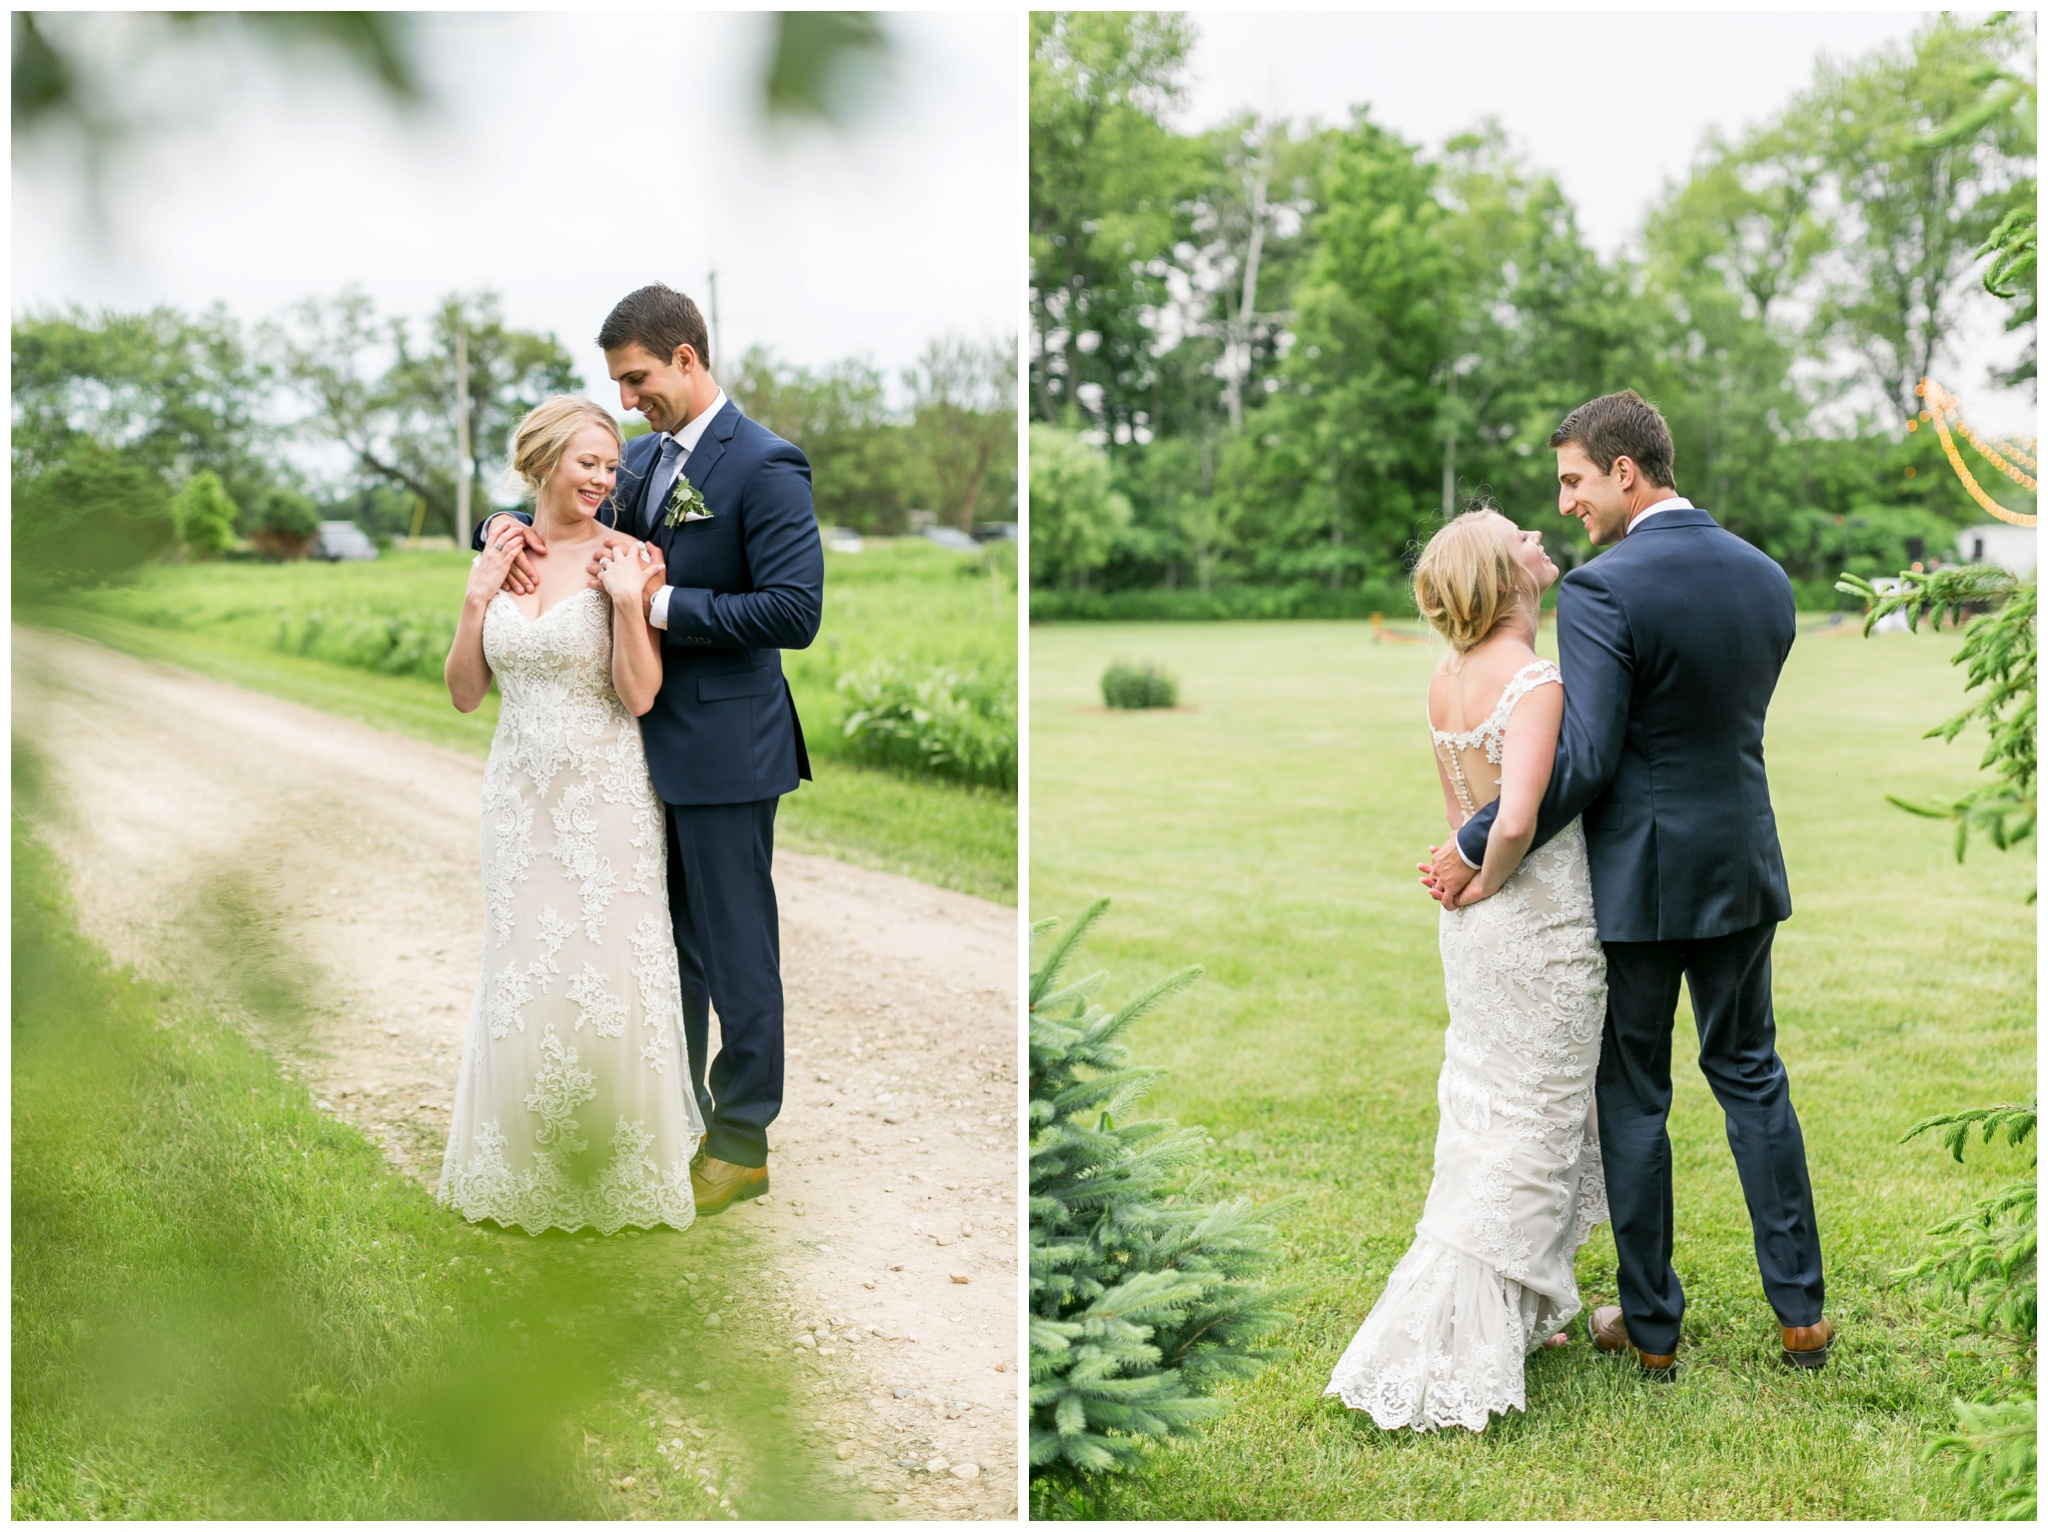 private_estate_wedding_stoughton_wisconsin_wedding_caynay_photo_3889.jpg